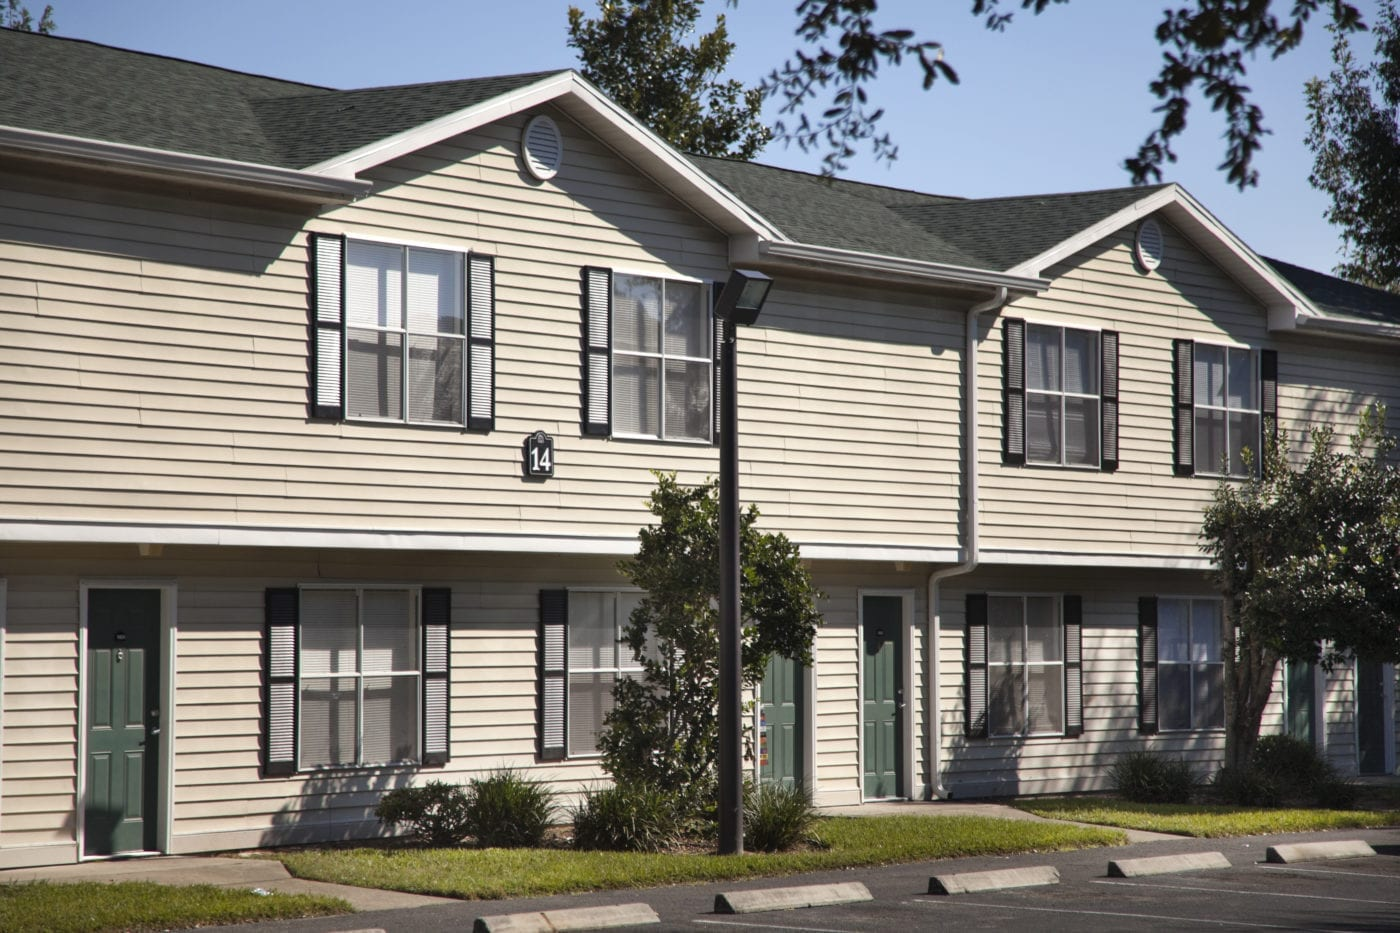 santa fe oaks 8203 nw 31st ave gainesville fl 32606 lowincomehousing us low income housing